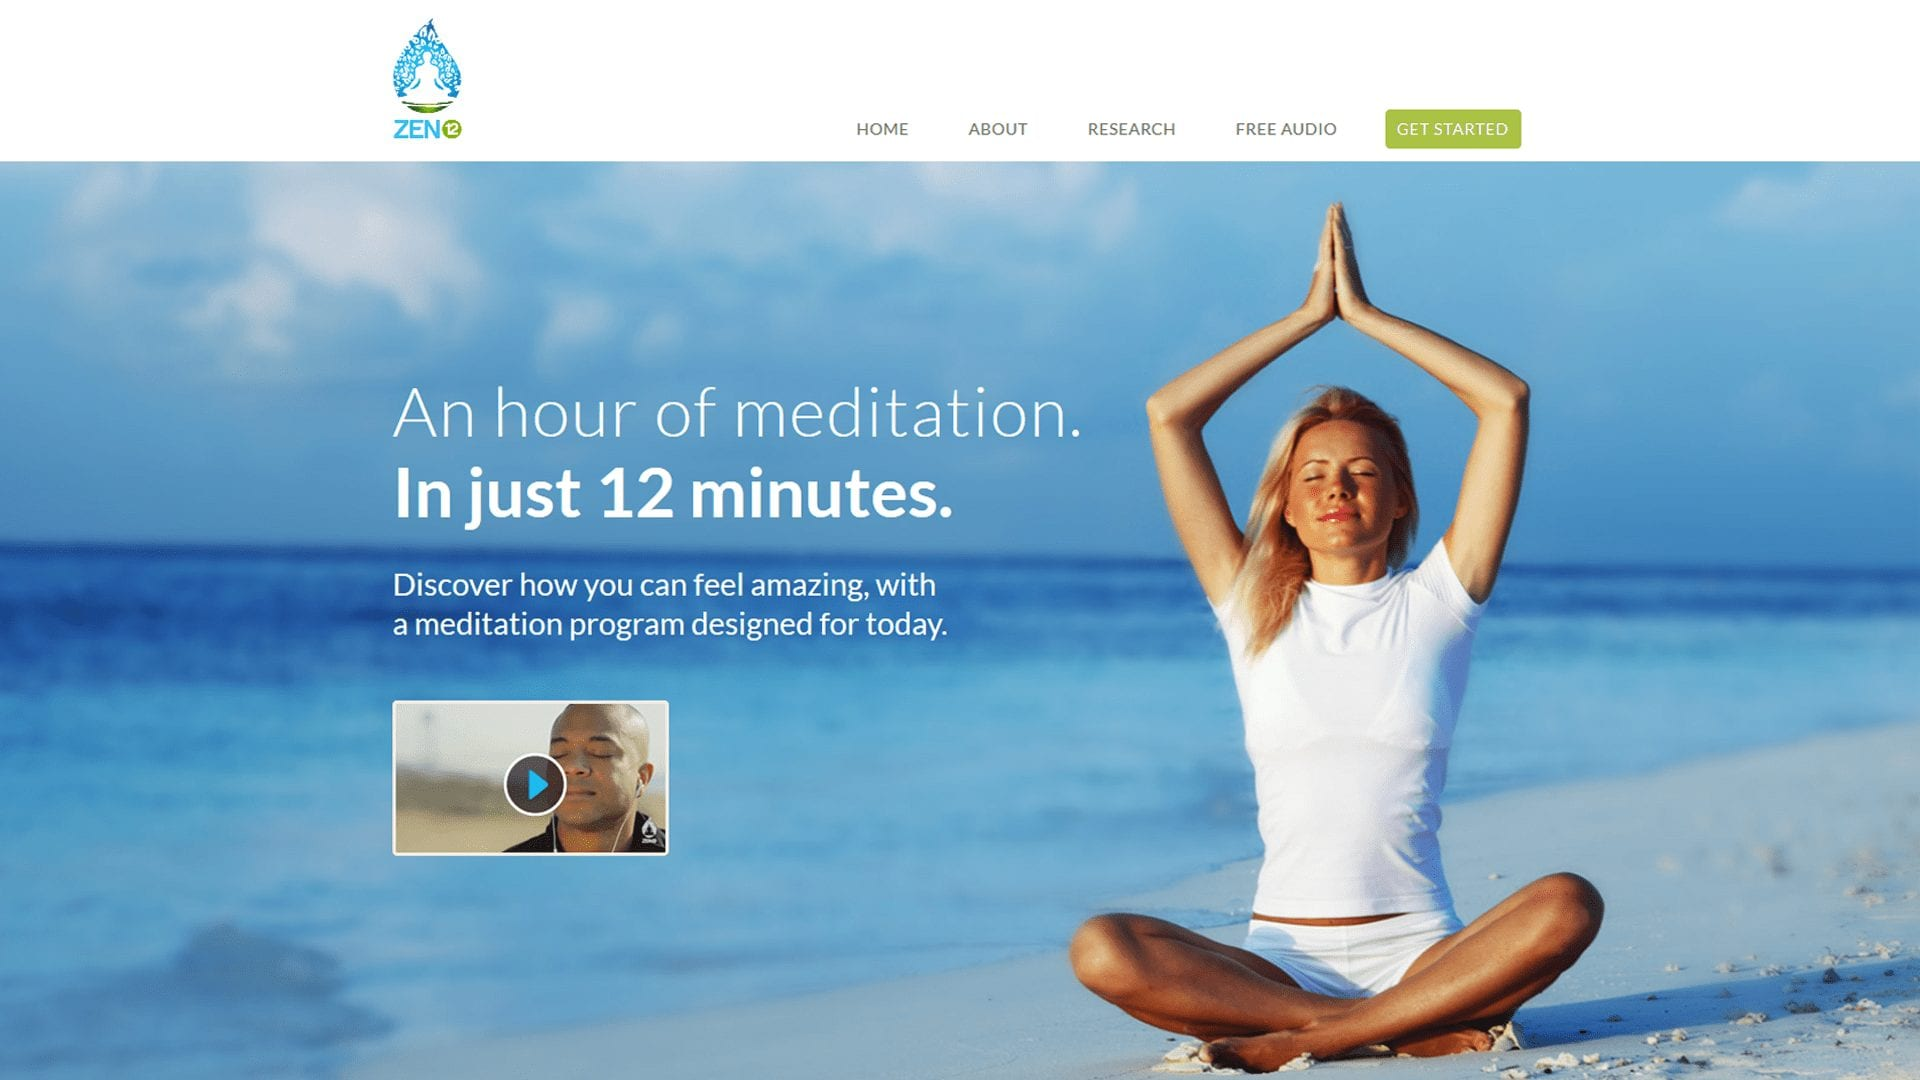 My Zen12 Review: 1 Hour Of Easy Meditation In 12 Minutes?